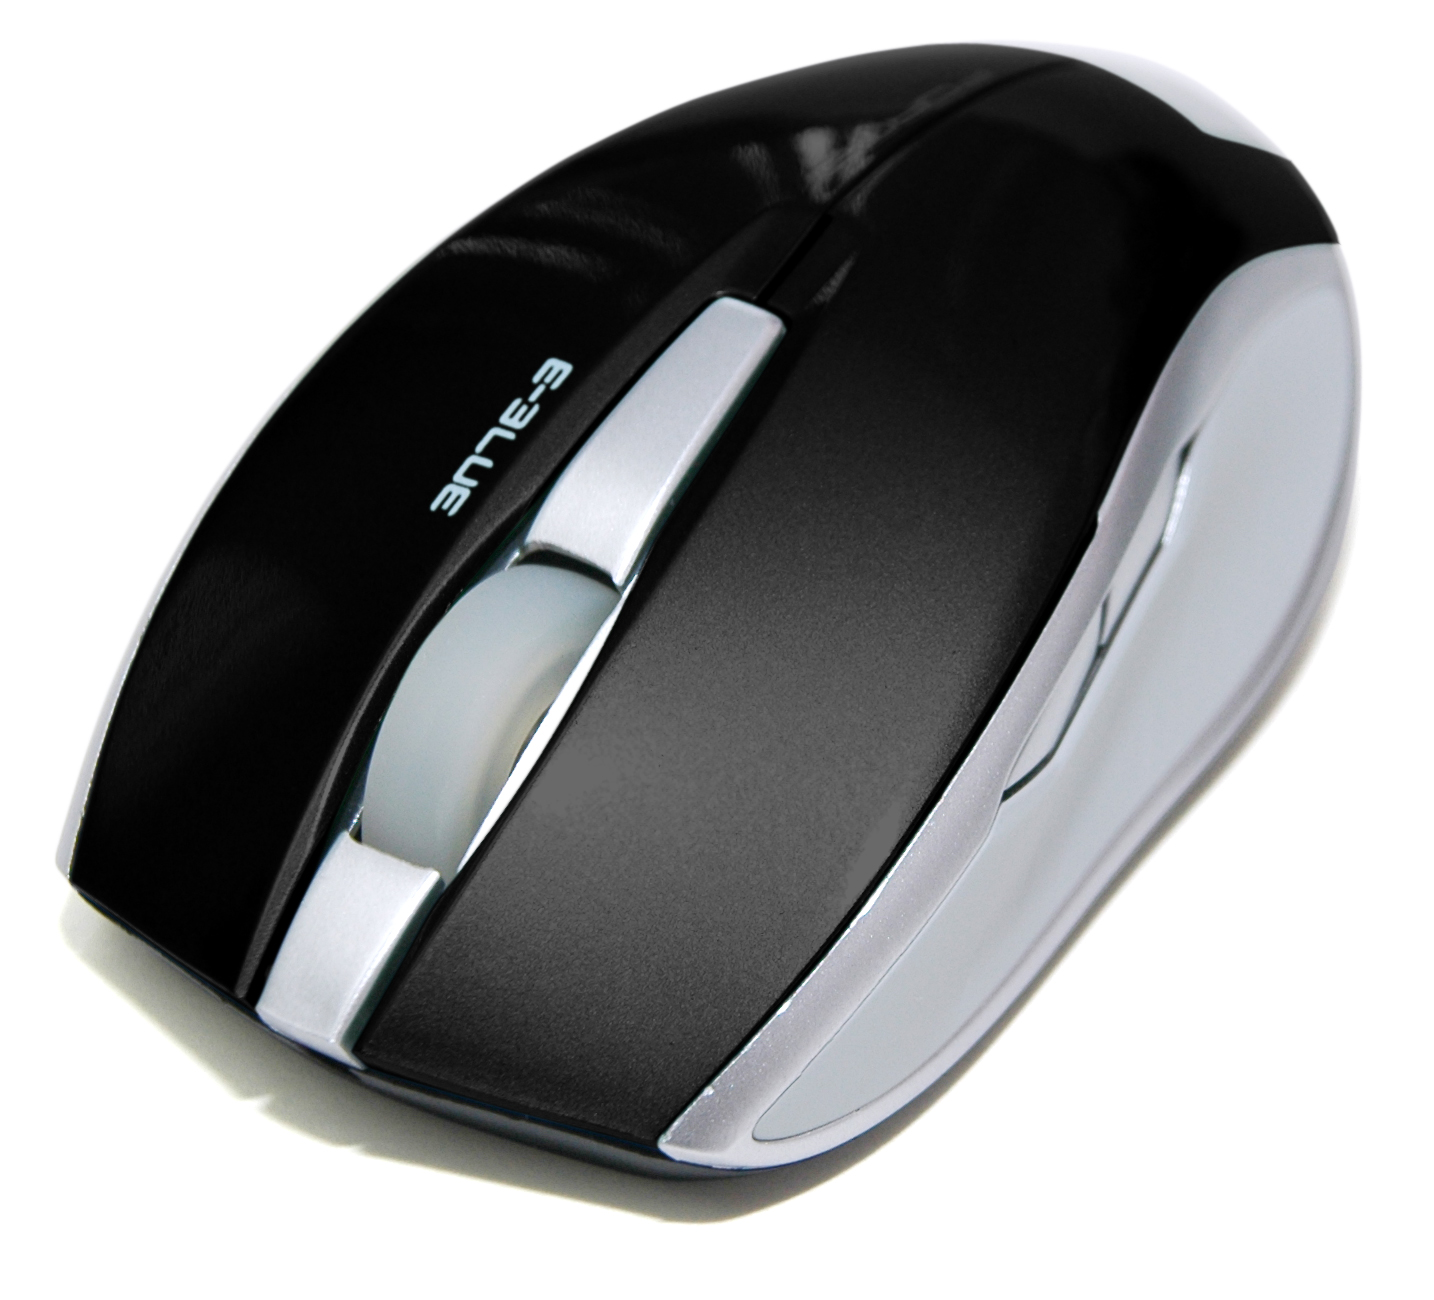 Forme G-Laser optical mouse